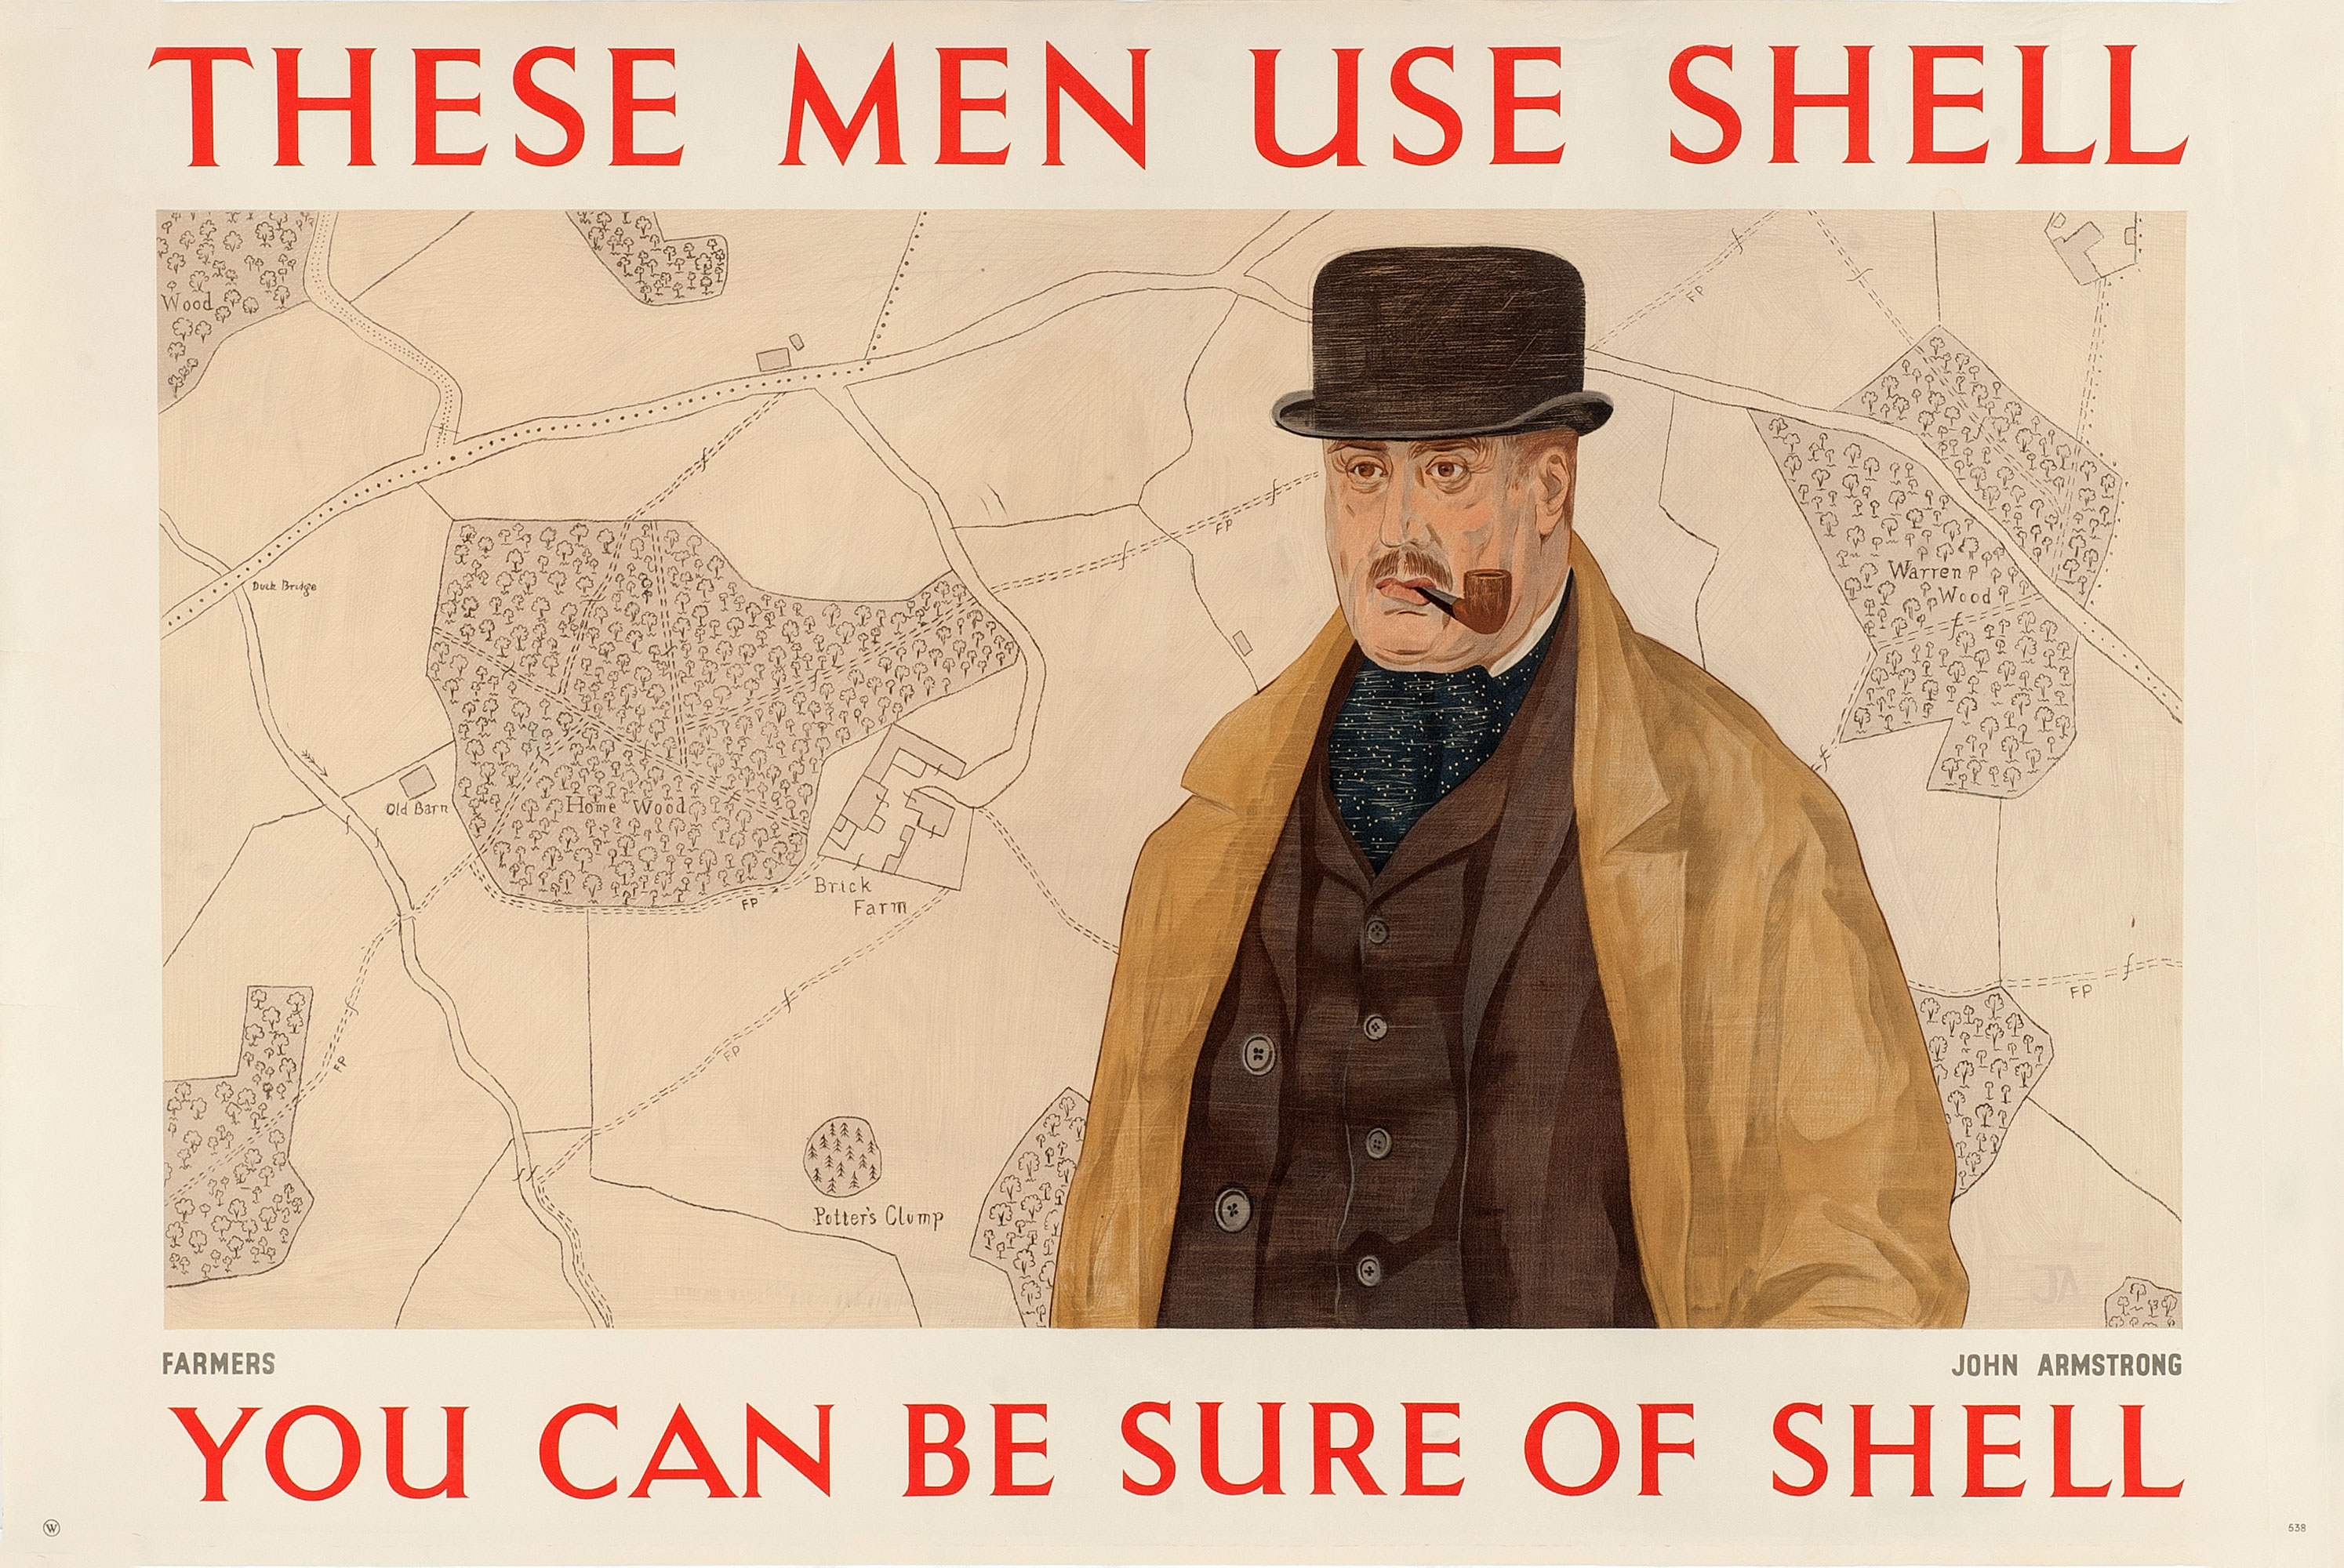 Shell poster number 538, Farmers use Shell (1939) by John Armstrong. Painting of a farmer in a bowler hat, coat and cravat, smoking a pipe.